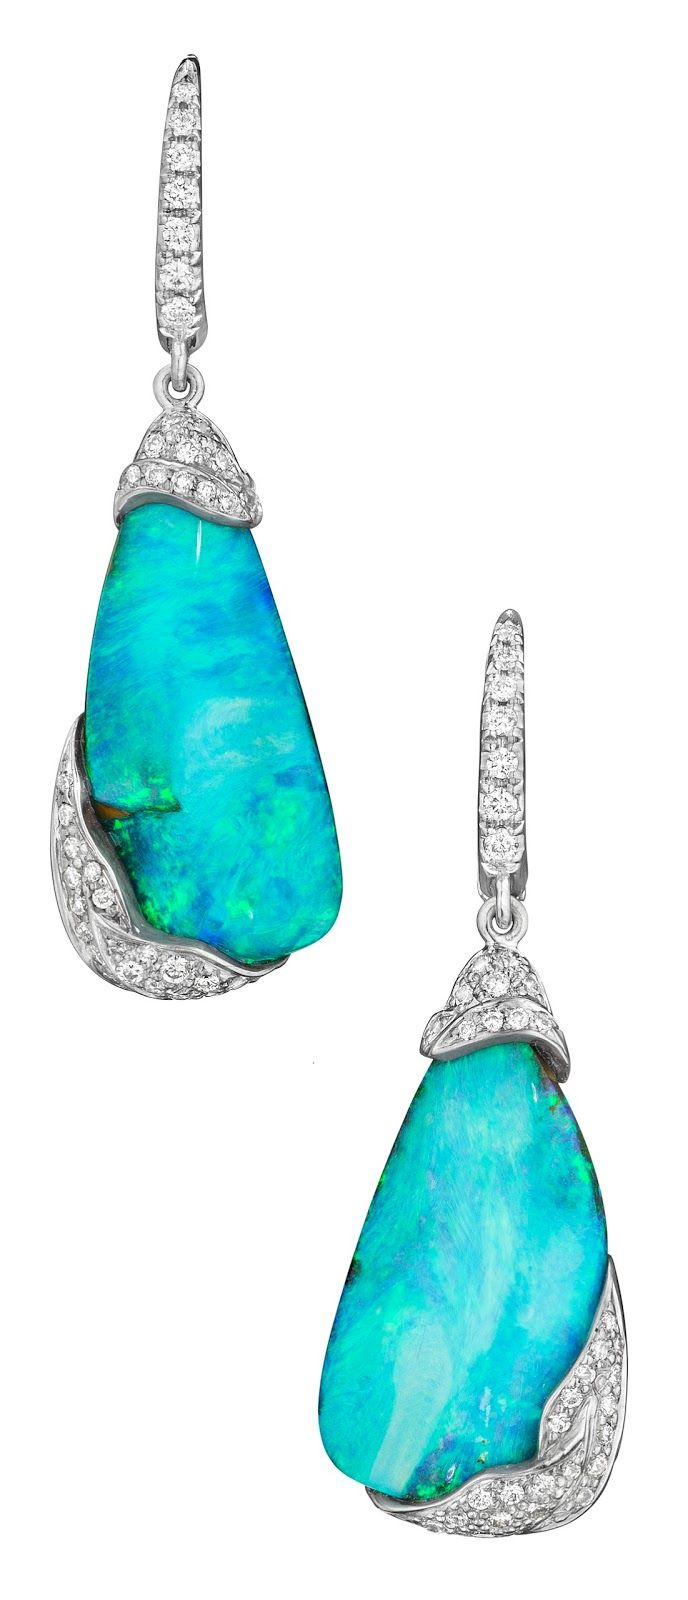 Mimi So ZoZo collection boulder opal and diamond earrings.  Via Diamonds in the Library.